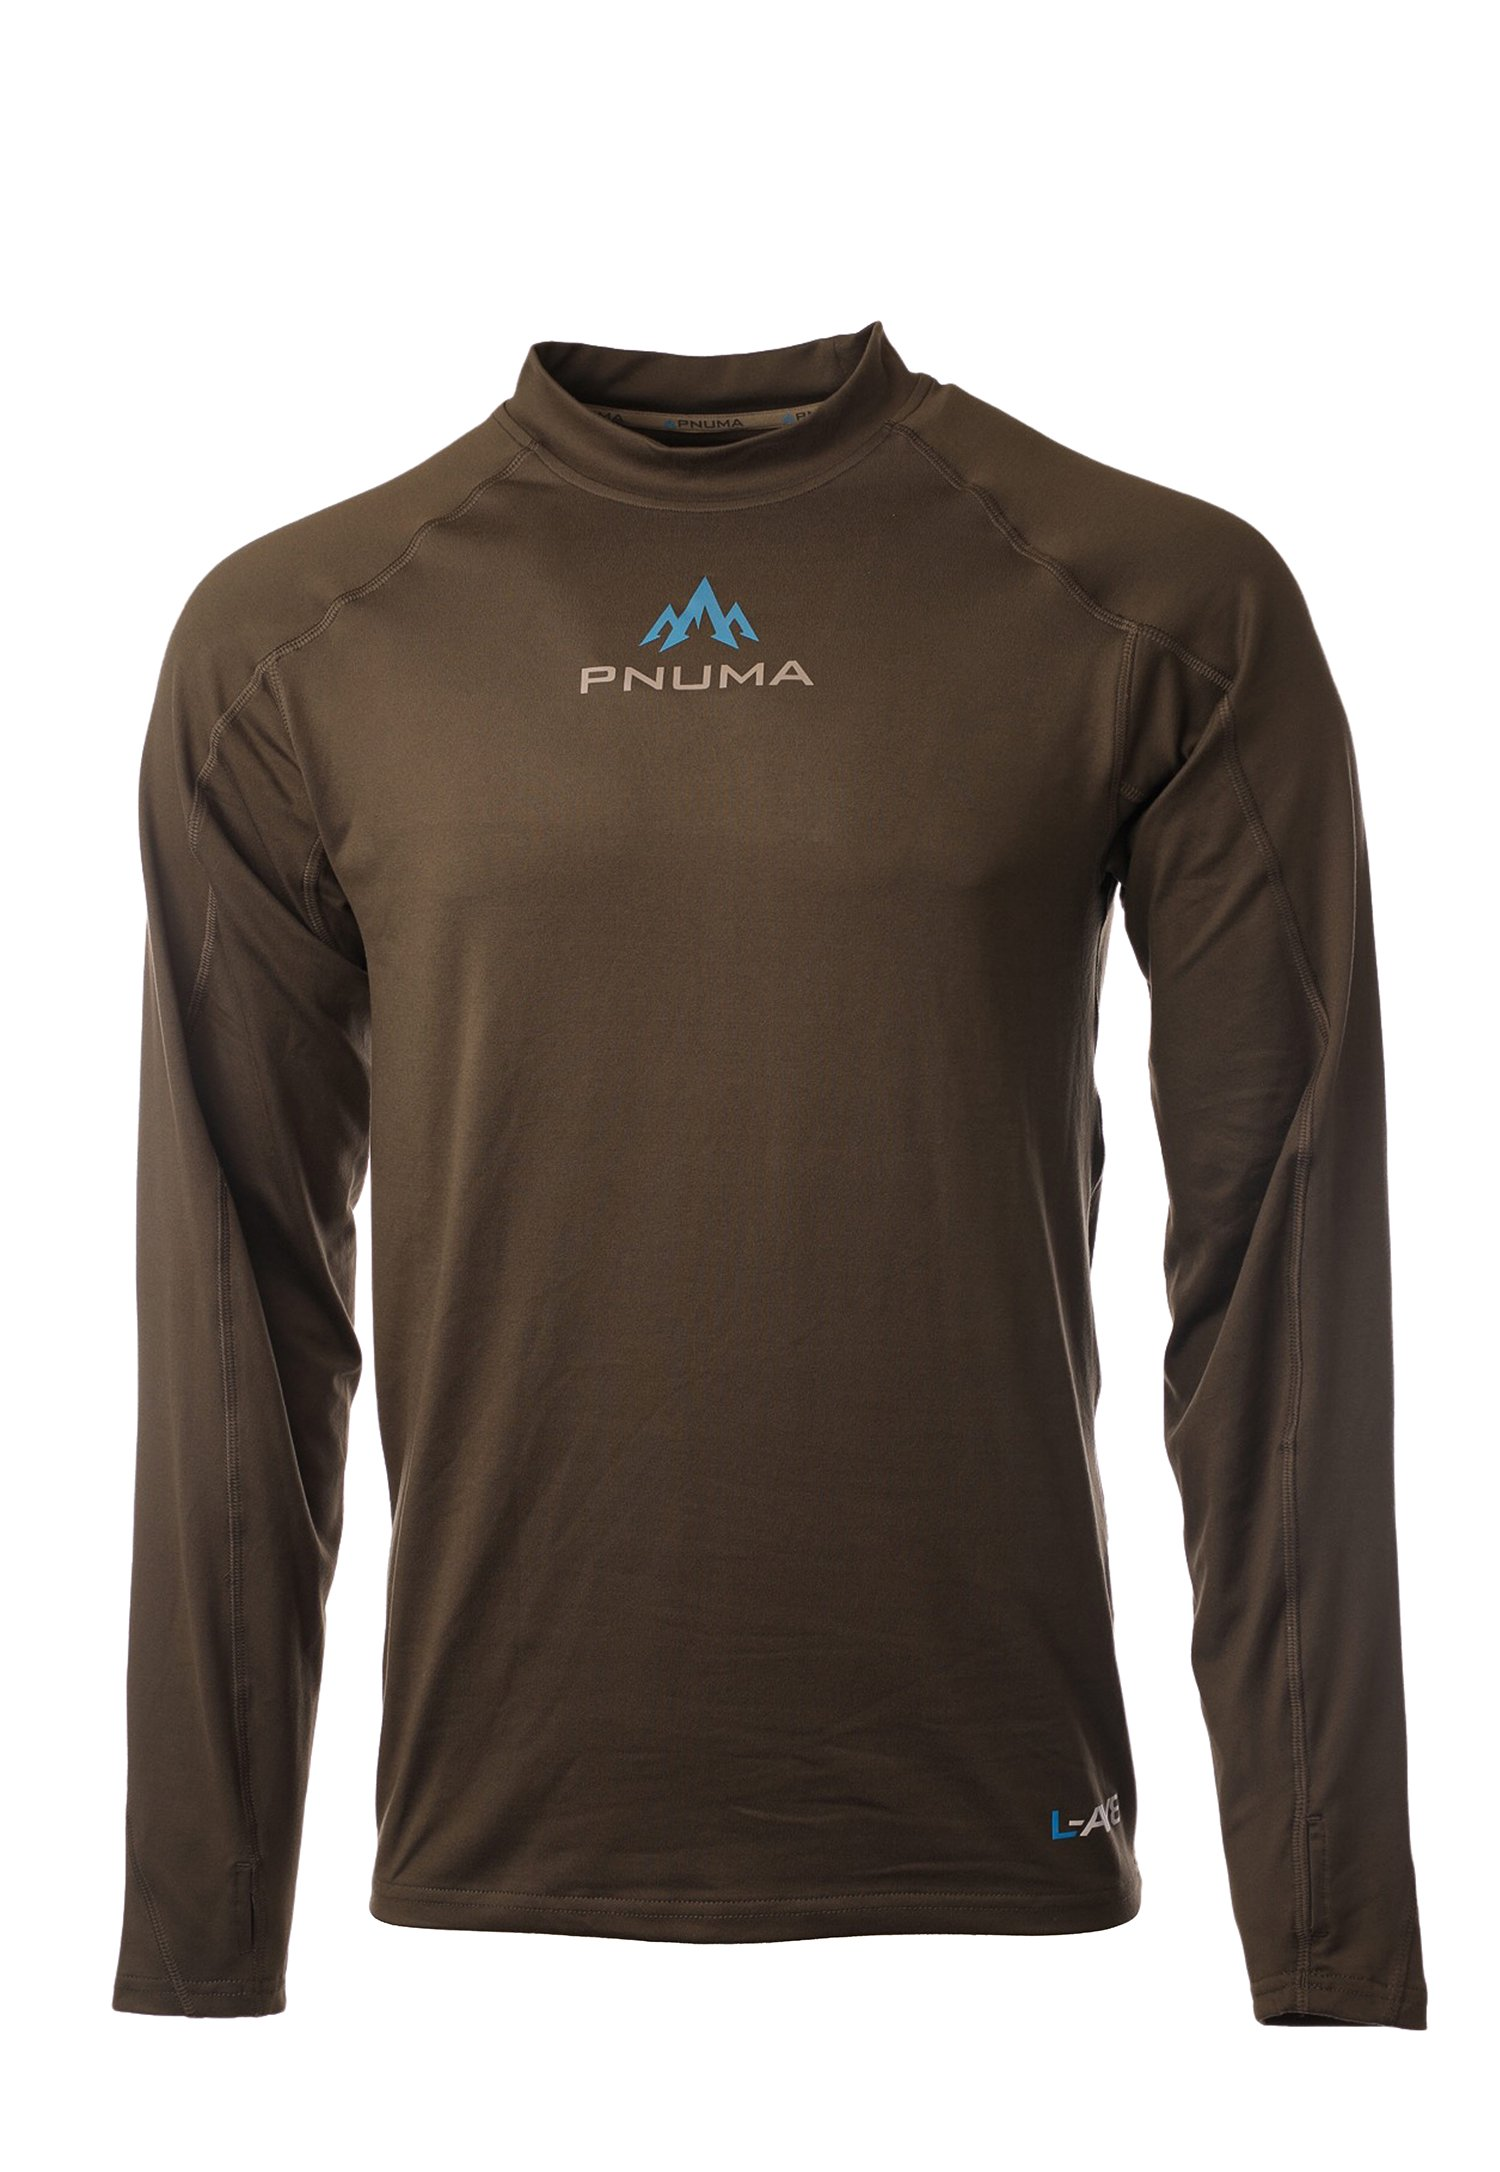 Rogue Performance Shirt with L-AV8 - Long Sleeve